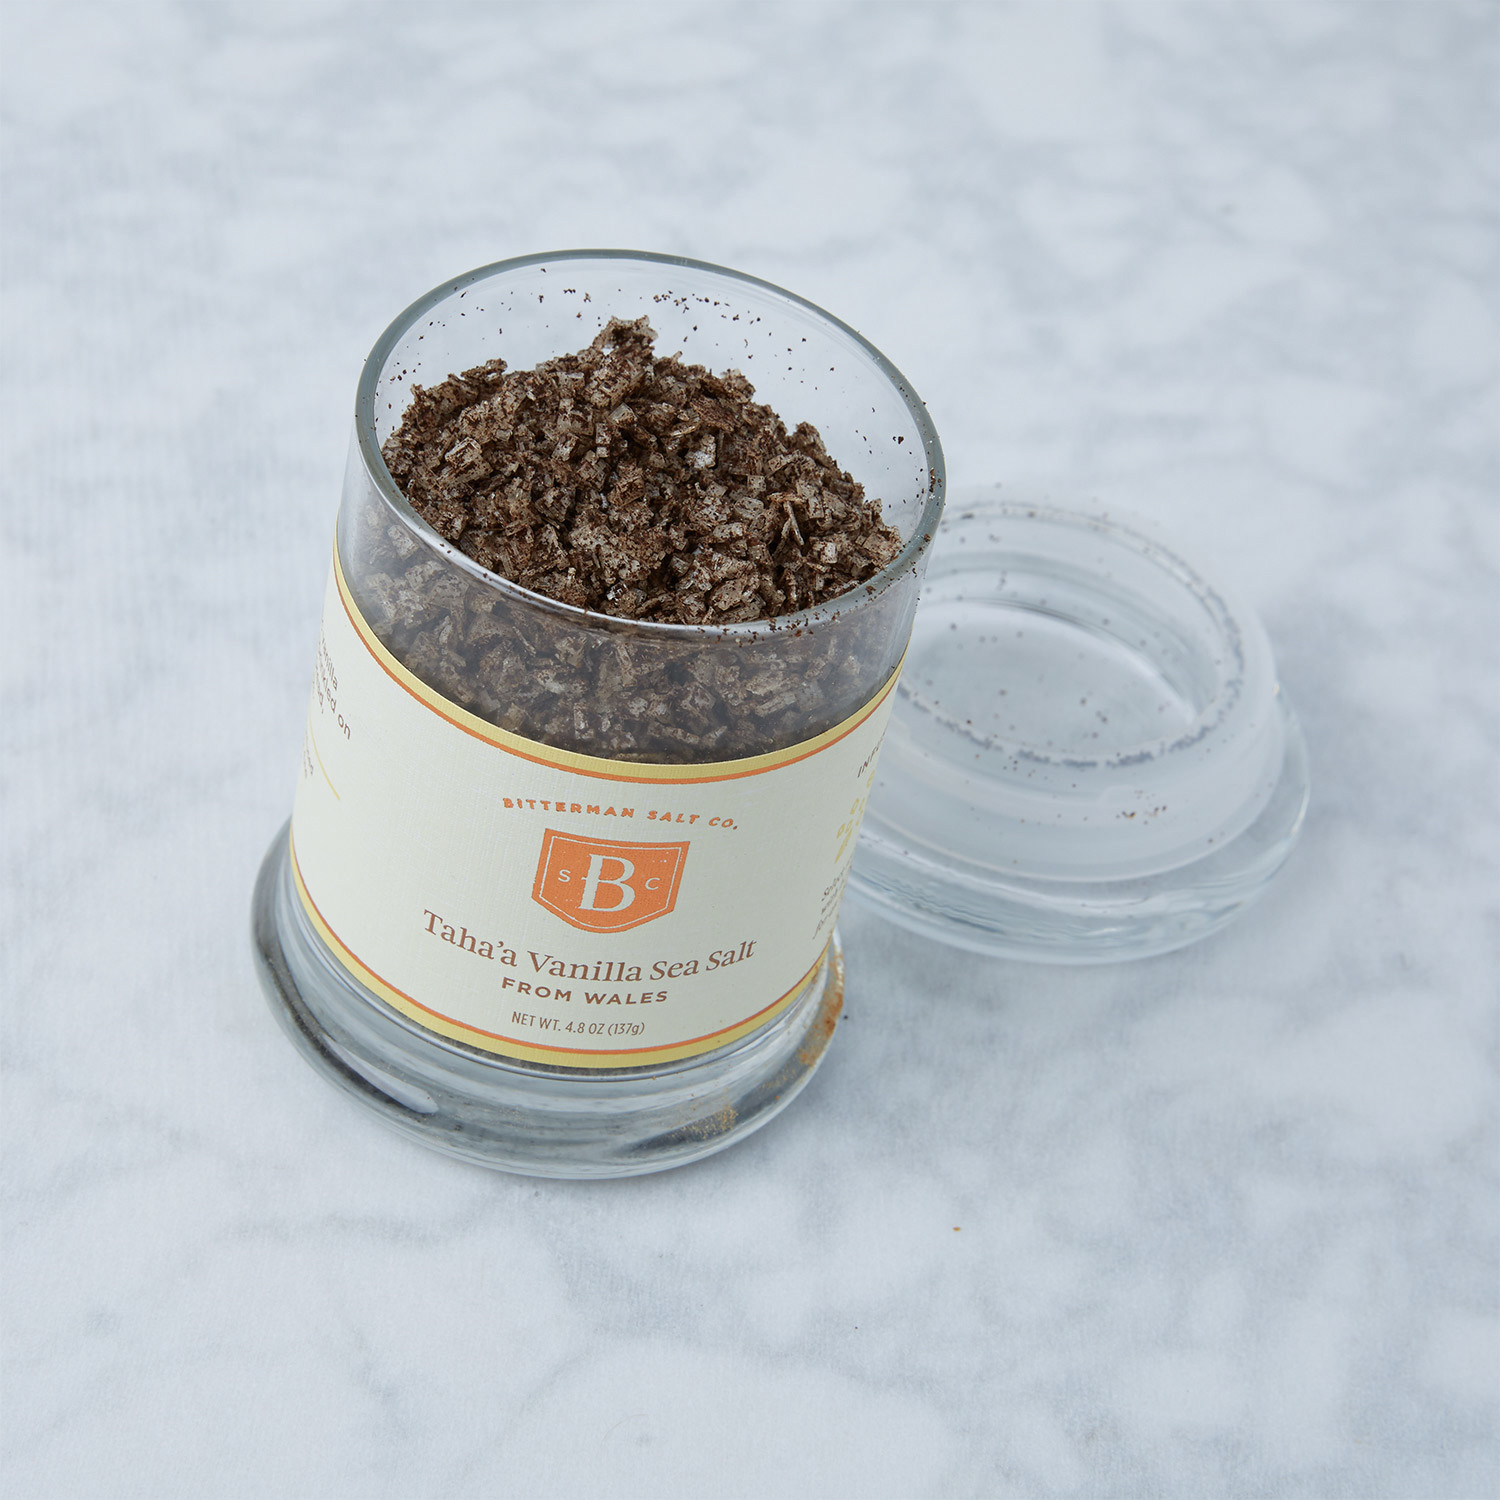 Taha's Vanilla Sea Salt // Large - Bitterman Salt Co. - Touch of ...